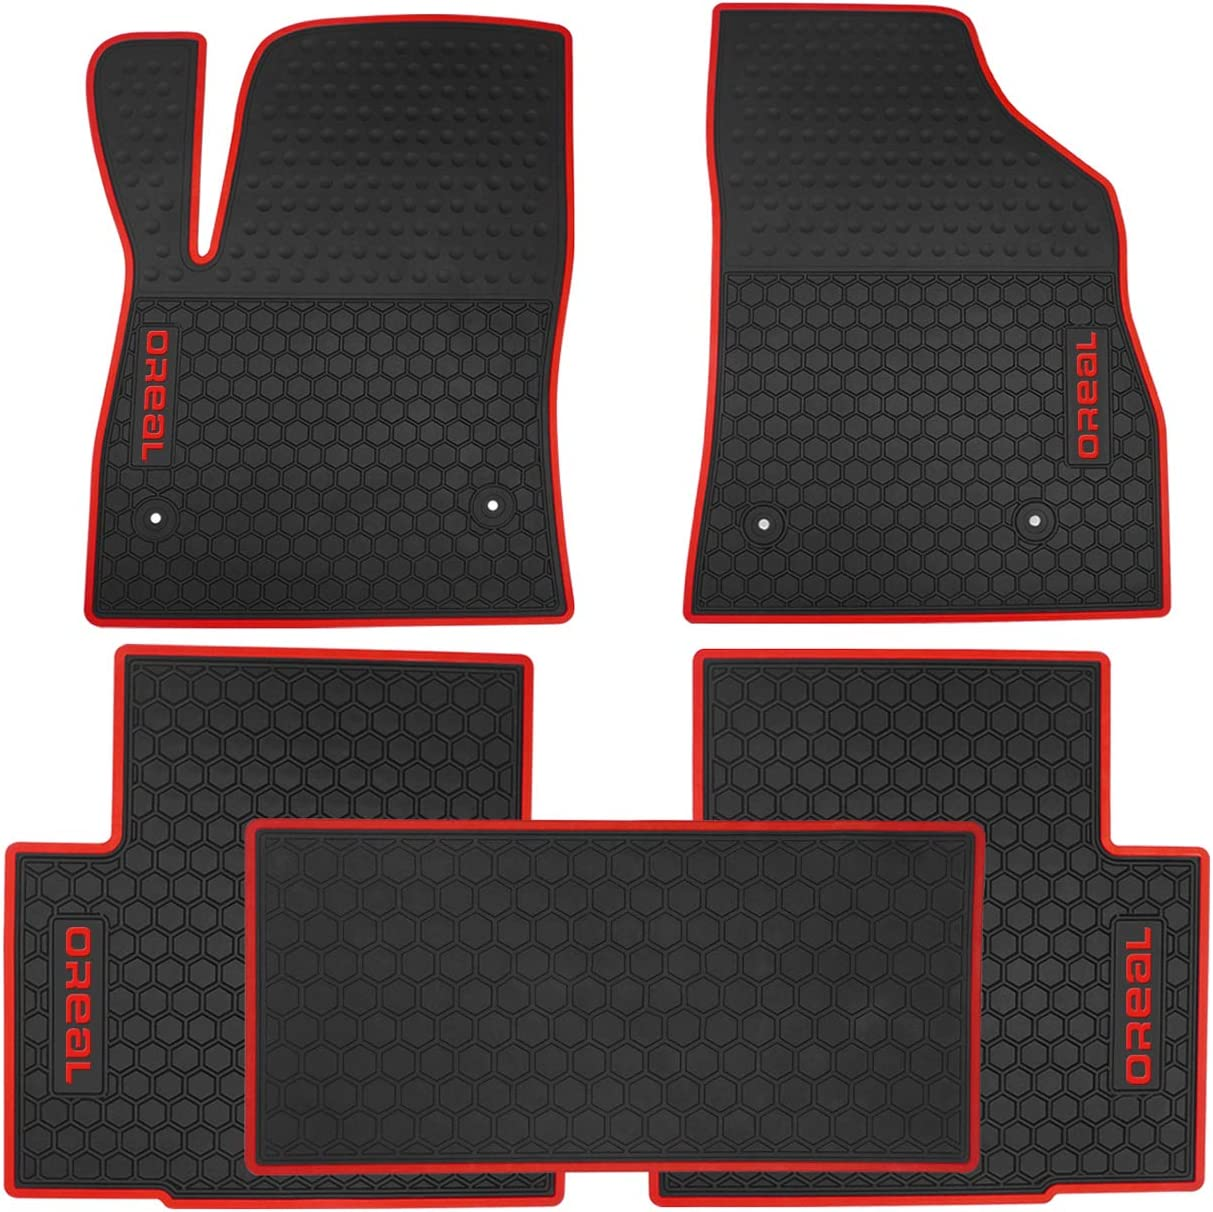 1998 GGBAILEY D4332A-S1A-PNK Custom Fit Automotive Carpet Floor Mats for 1996 1999 2001 Audi A4 Sedan Pink Driver 1997 2000 Passenger /& Rear